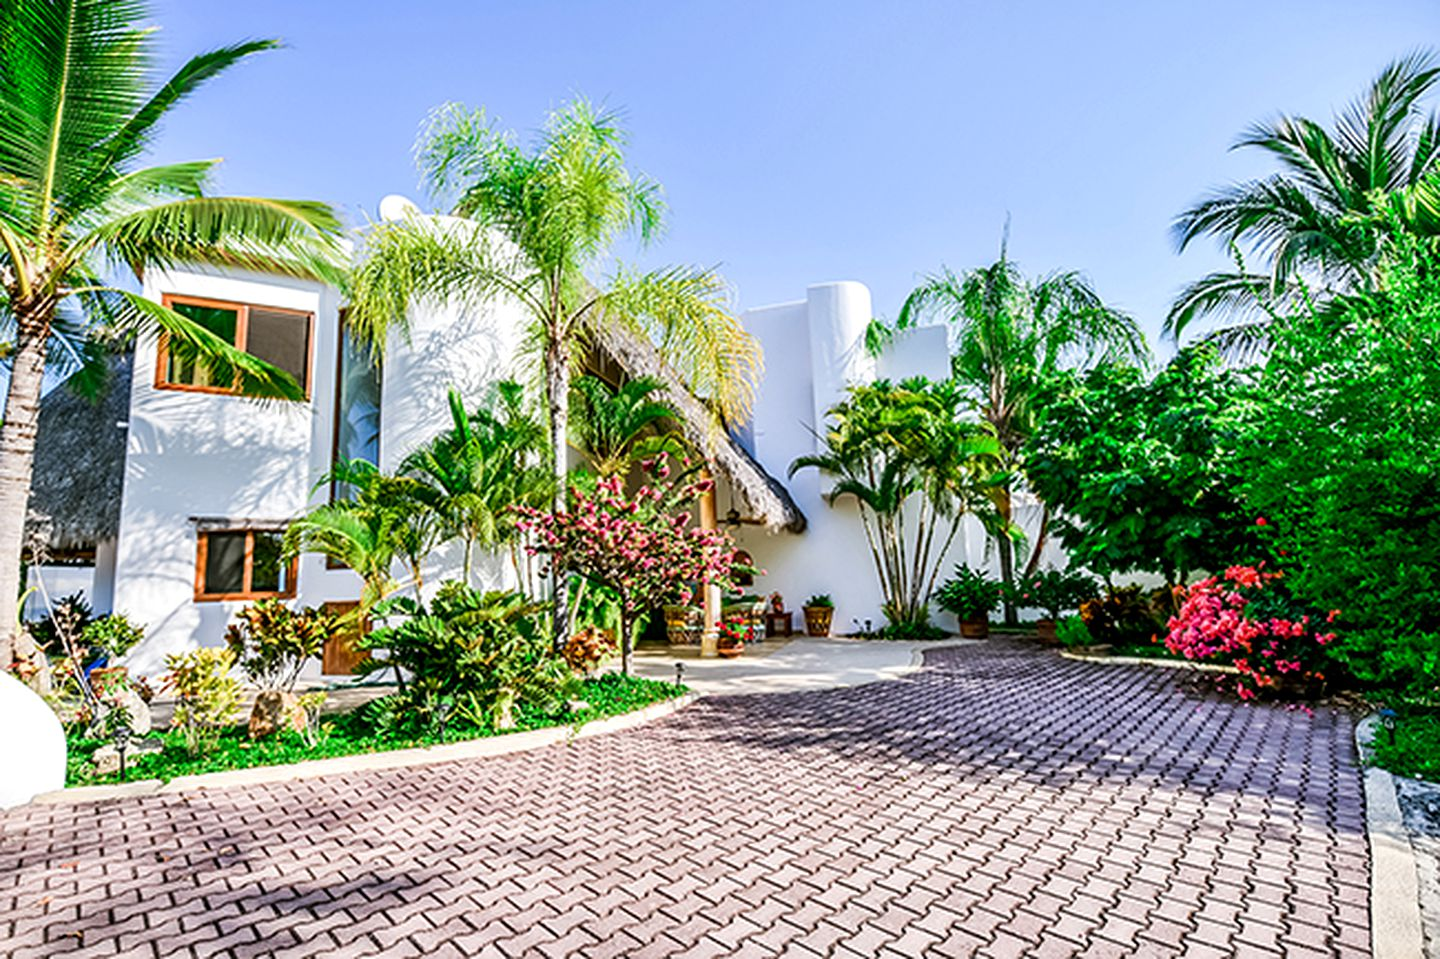 Vacation Rentals (San Francisco, Nayarit, Mexico)